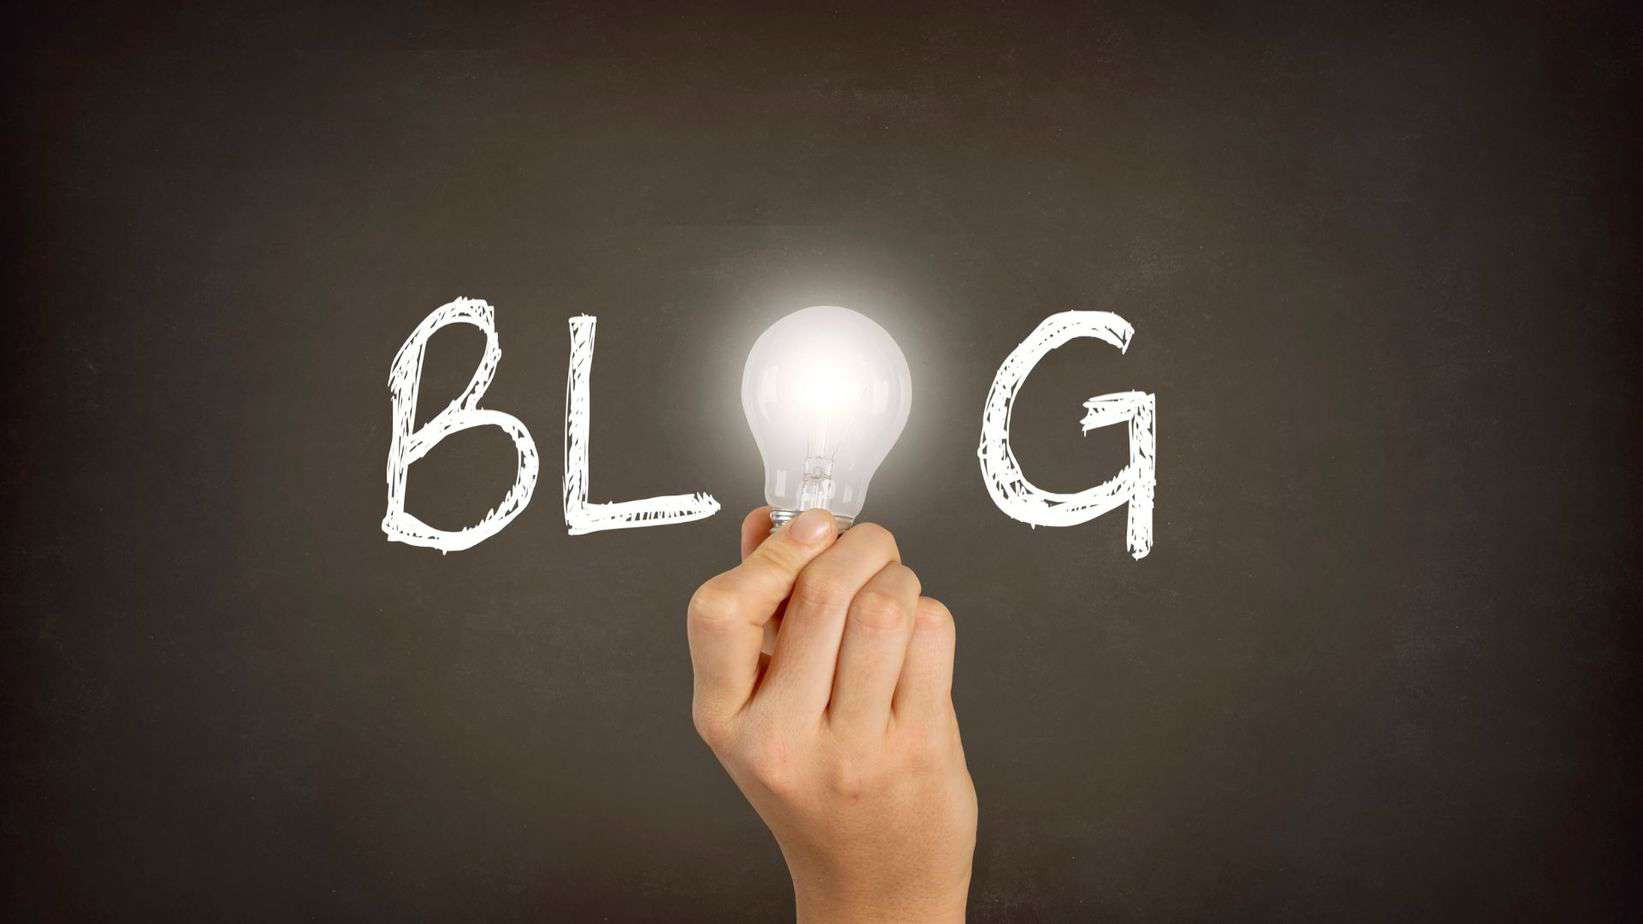 Black background, white letters, the word Blog with a lightbulb